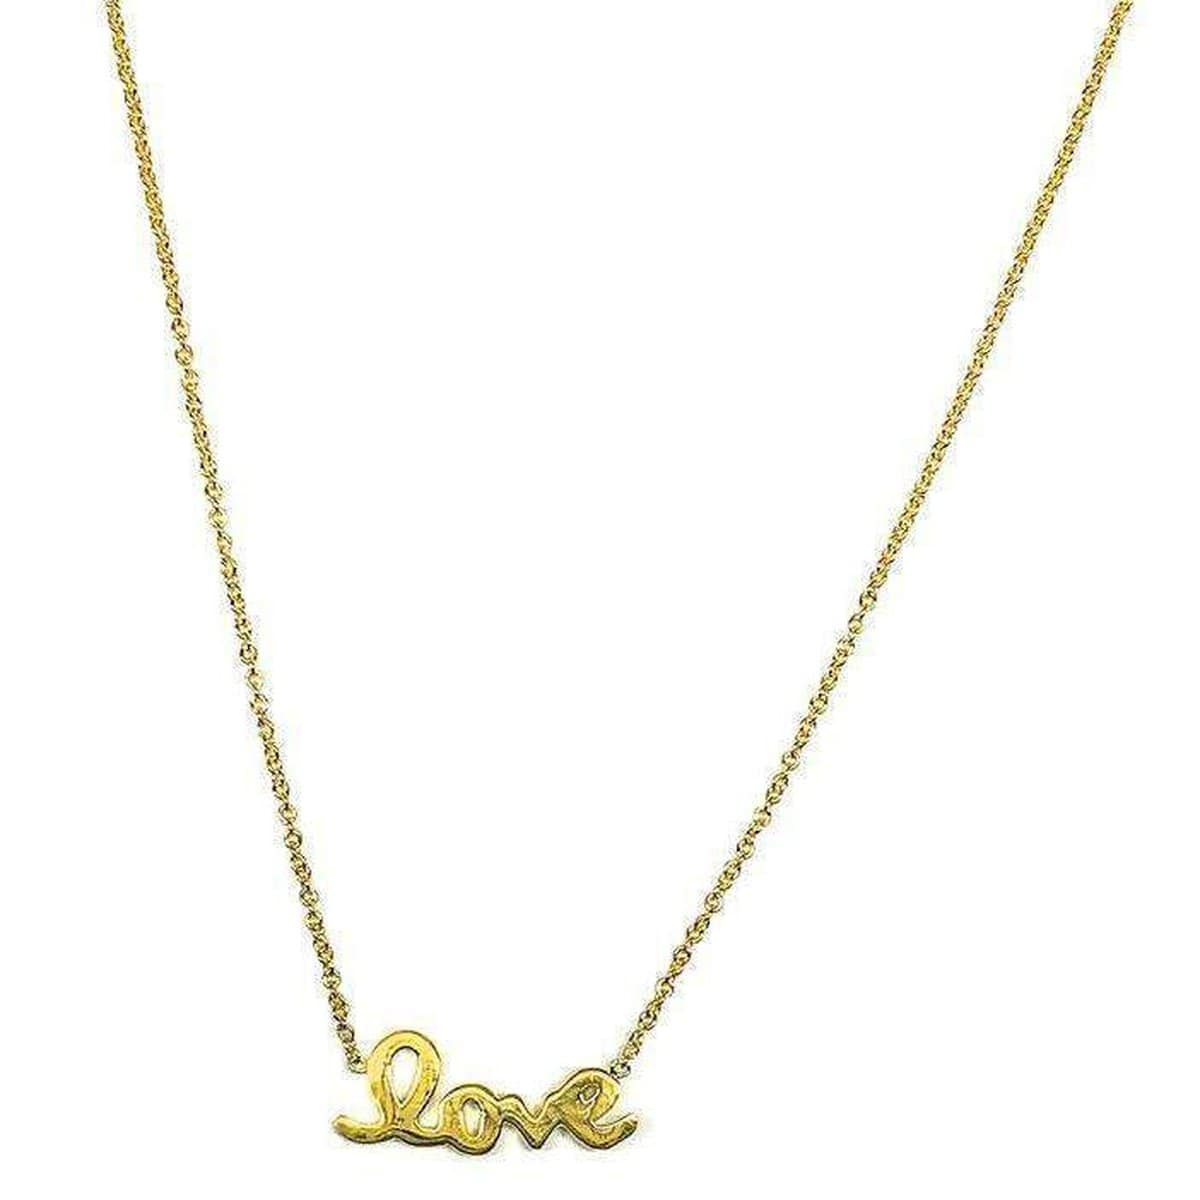 18k Yellow Gold & Diamond Love Necklace - 000995AYCH00-Roberto Coin-Renee Taylor Gallery